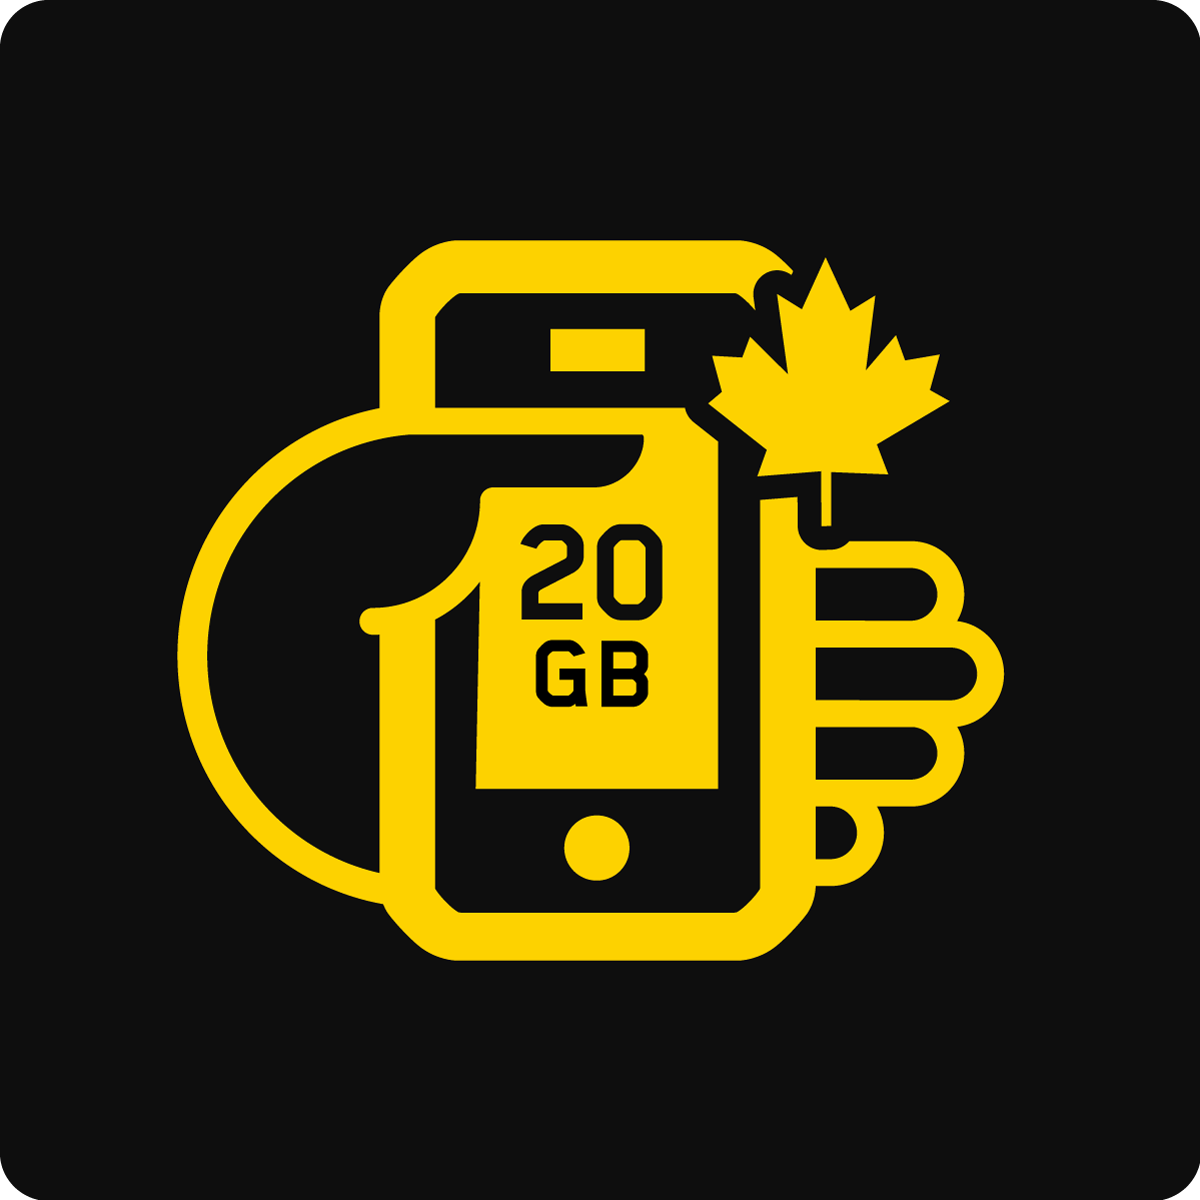 Bring Your Own Device Canada 20GB Mobile plan